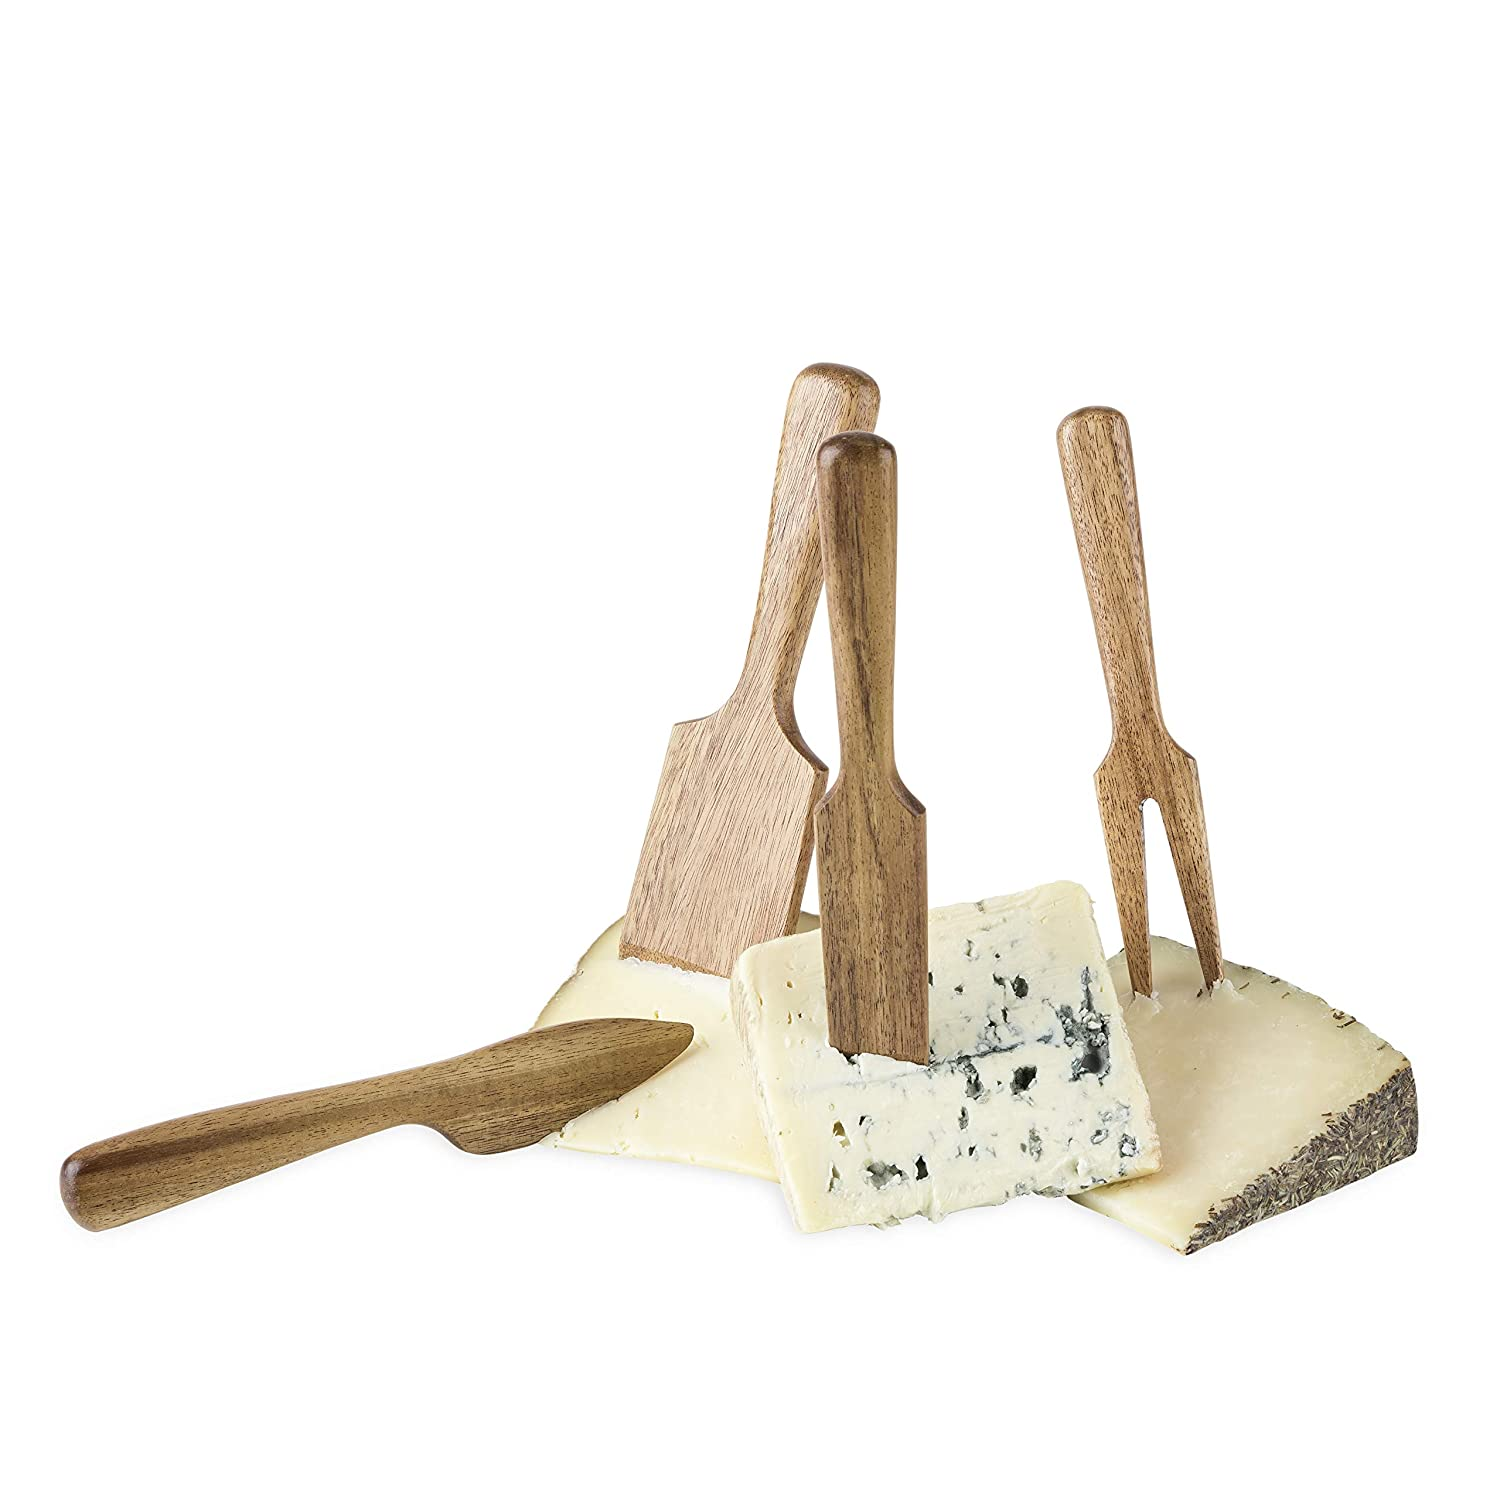 Twine 5589 Country Home Acacia Wood Cheese Set Medium Multi colored